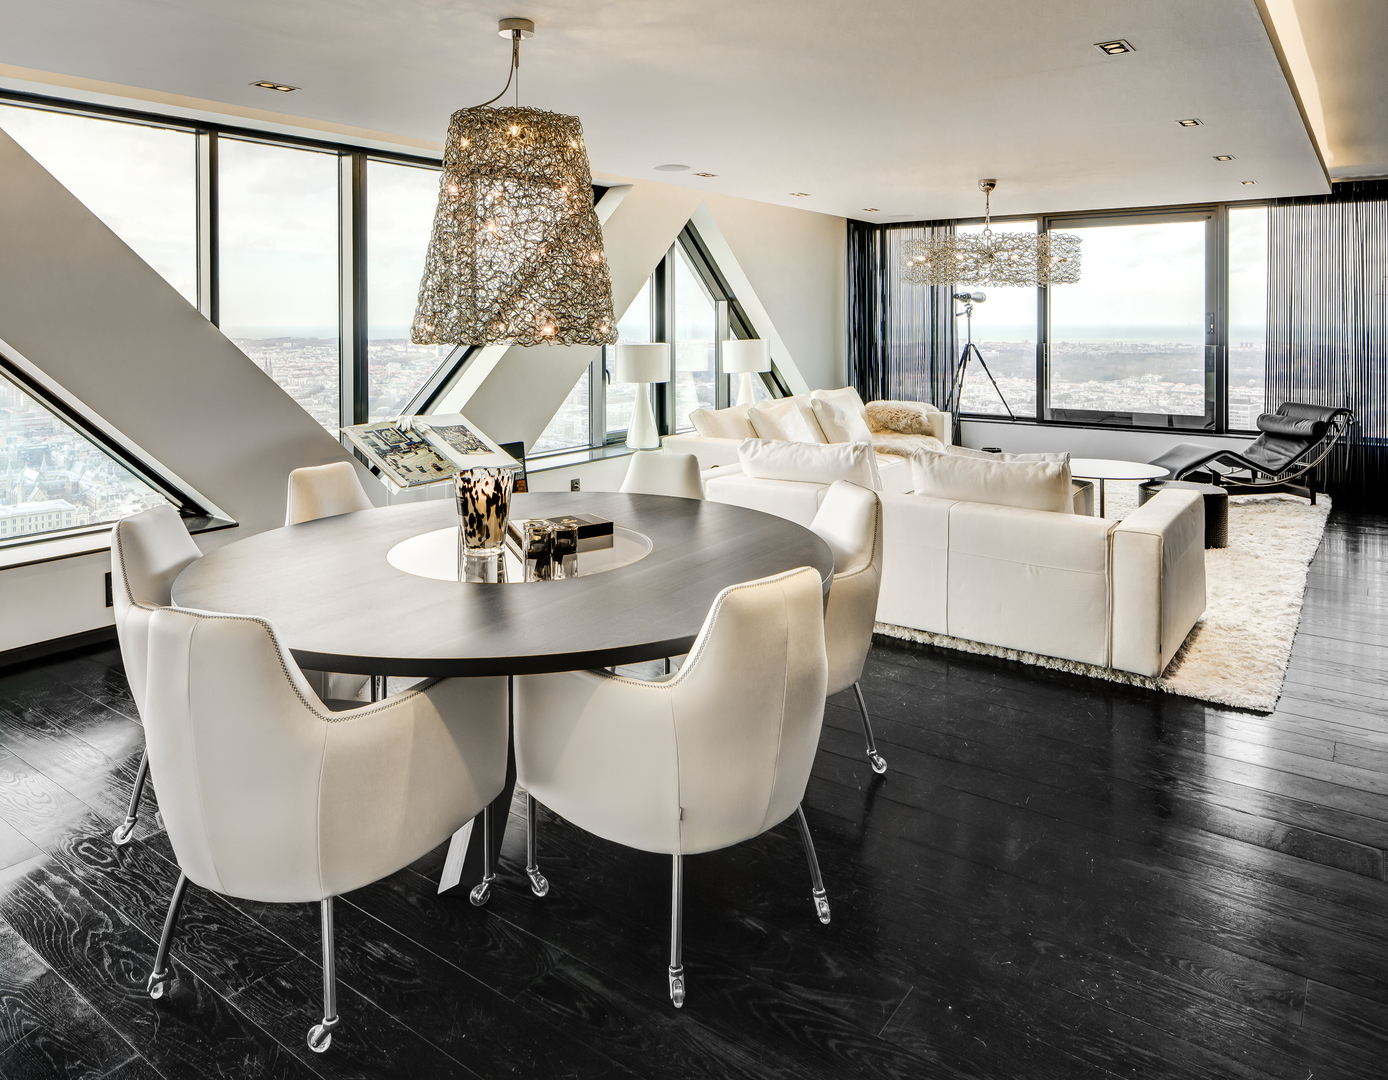 Private Interior Netherlands  Hollywood & Crystal Waters  02.jpg